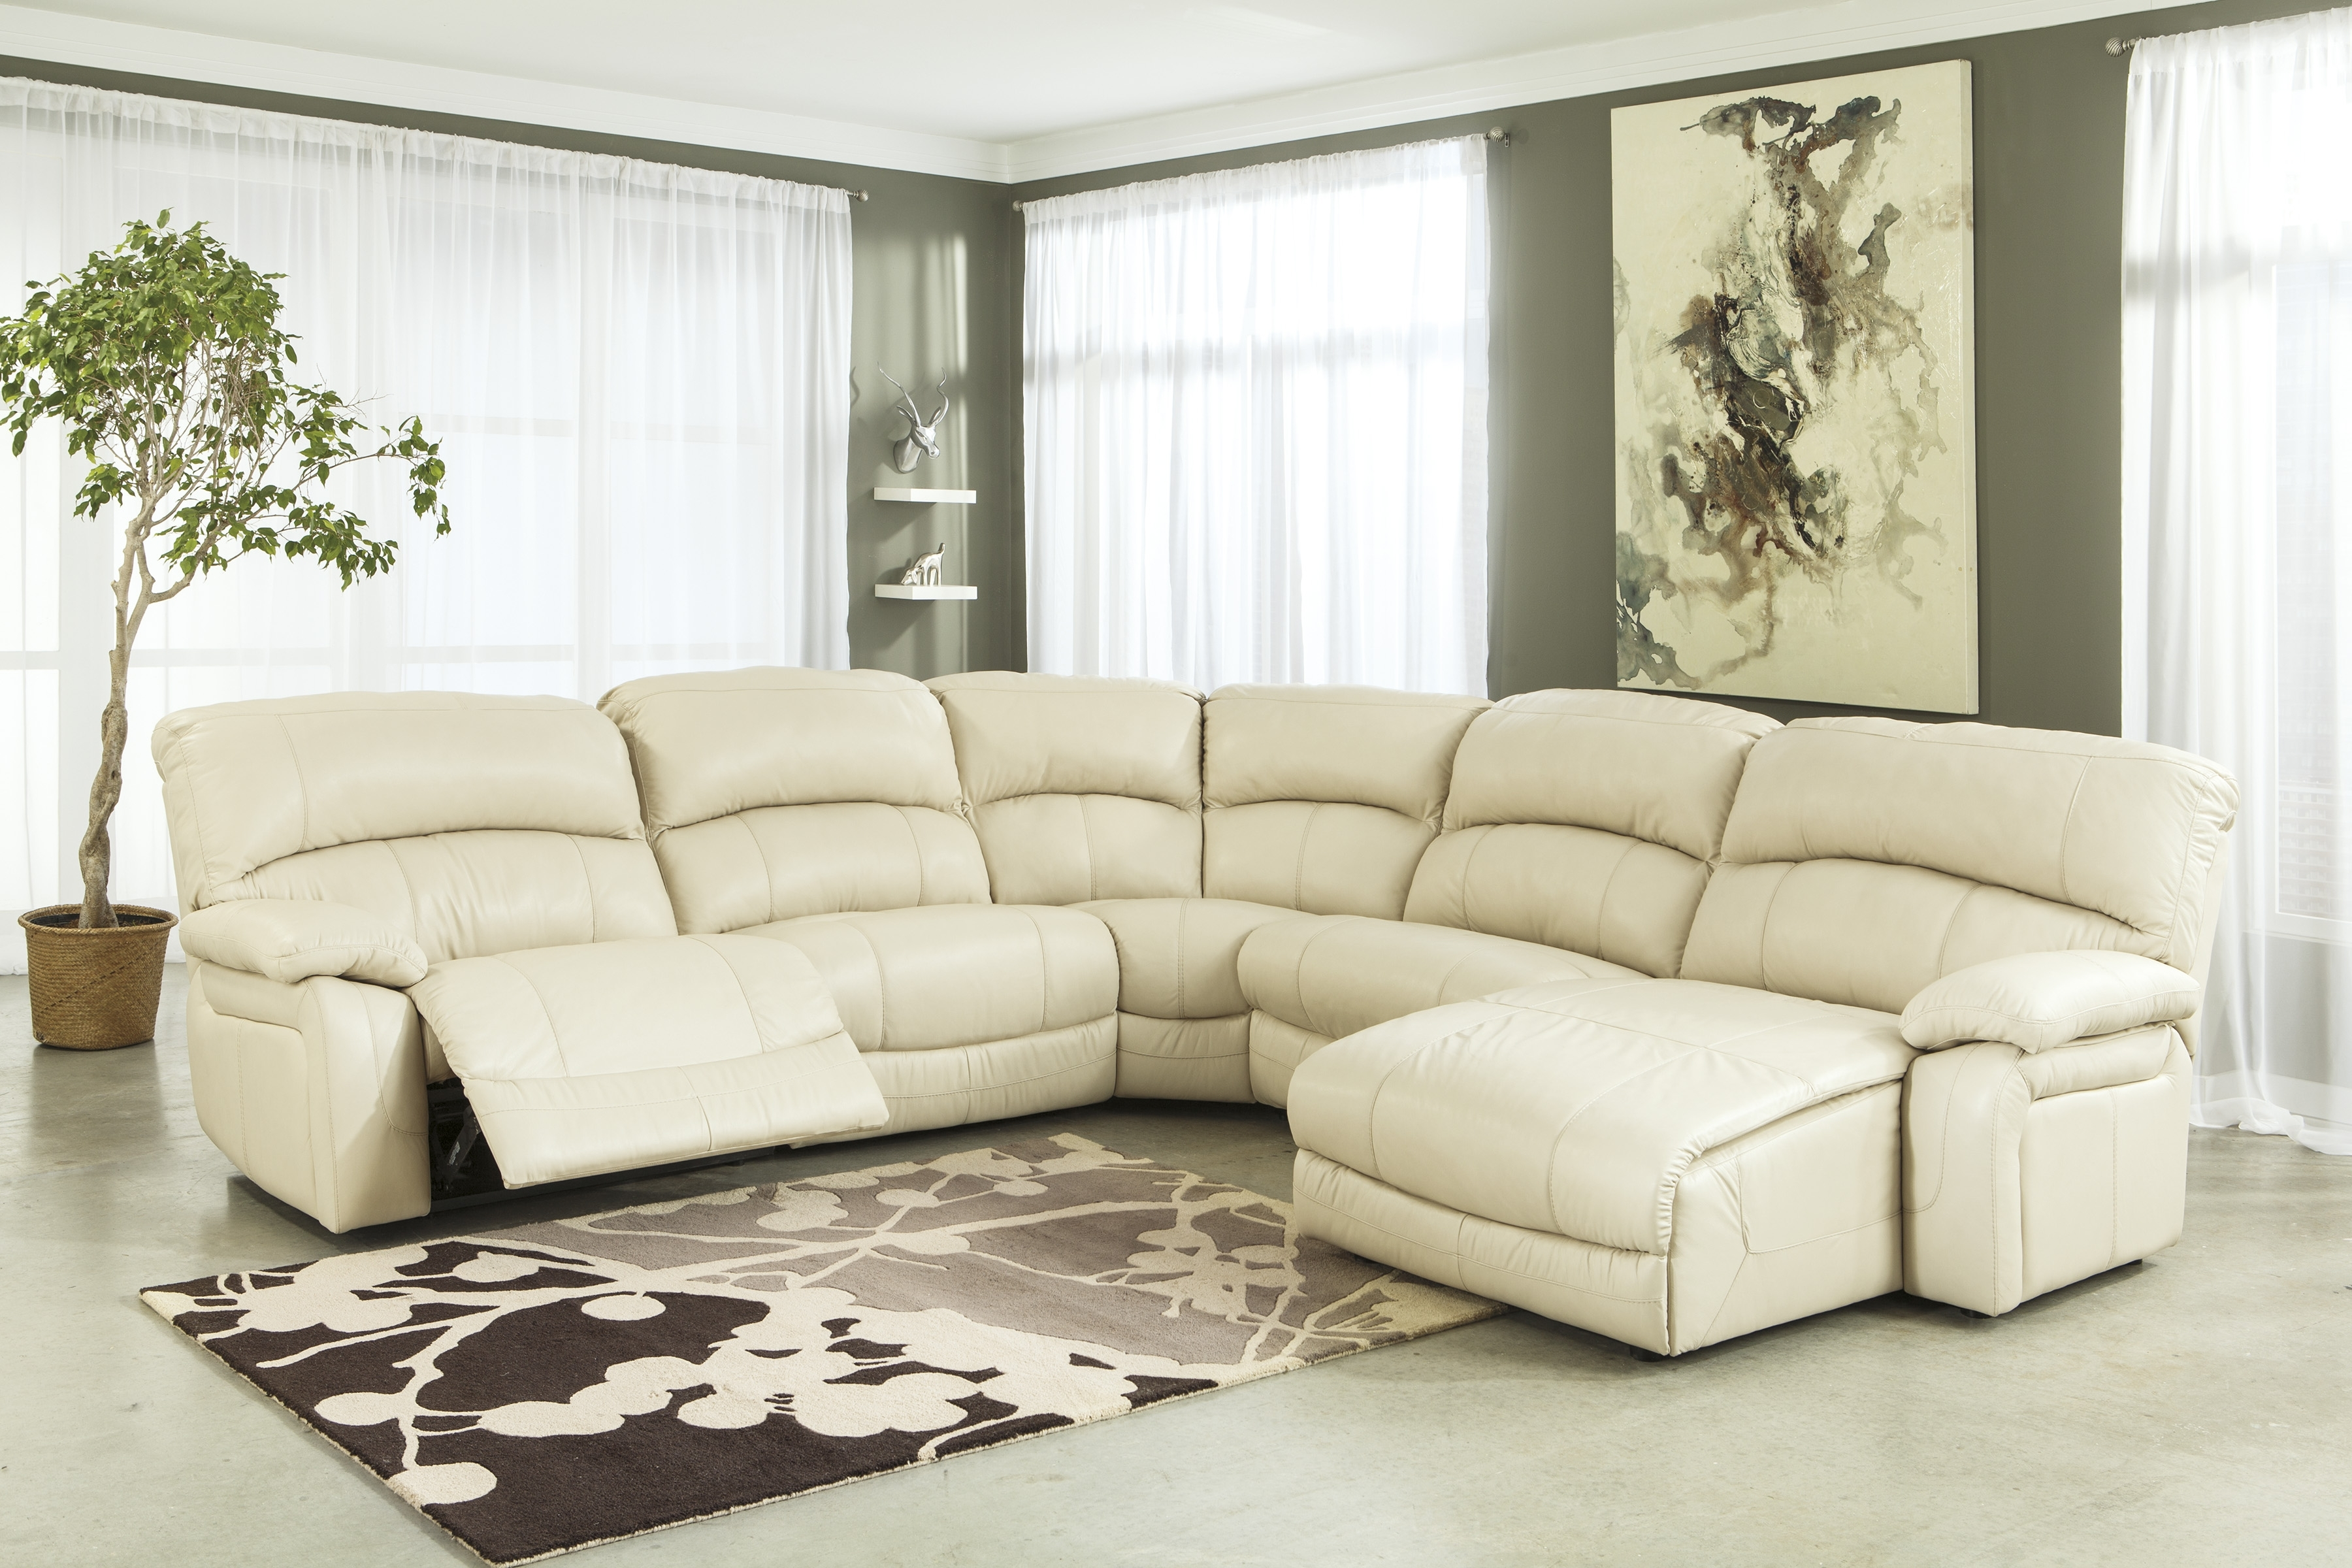 Macy's Power Recliner Sofa Sectional Couches Big Lots Power Inside Popular Cream Chaise Sofas (View 11 of 15)